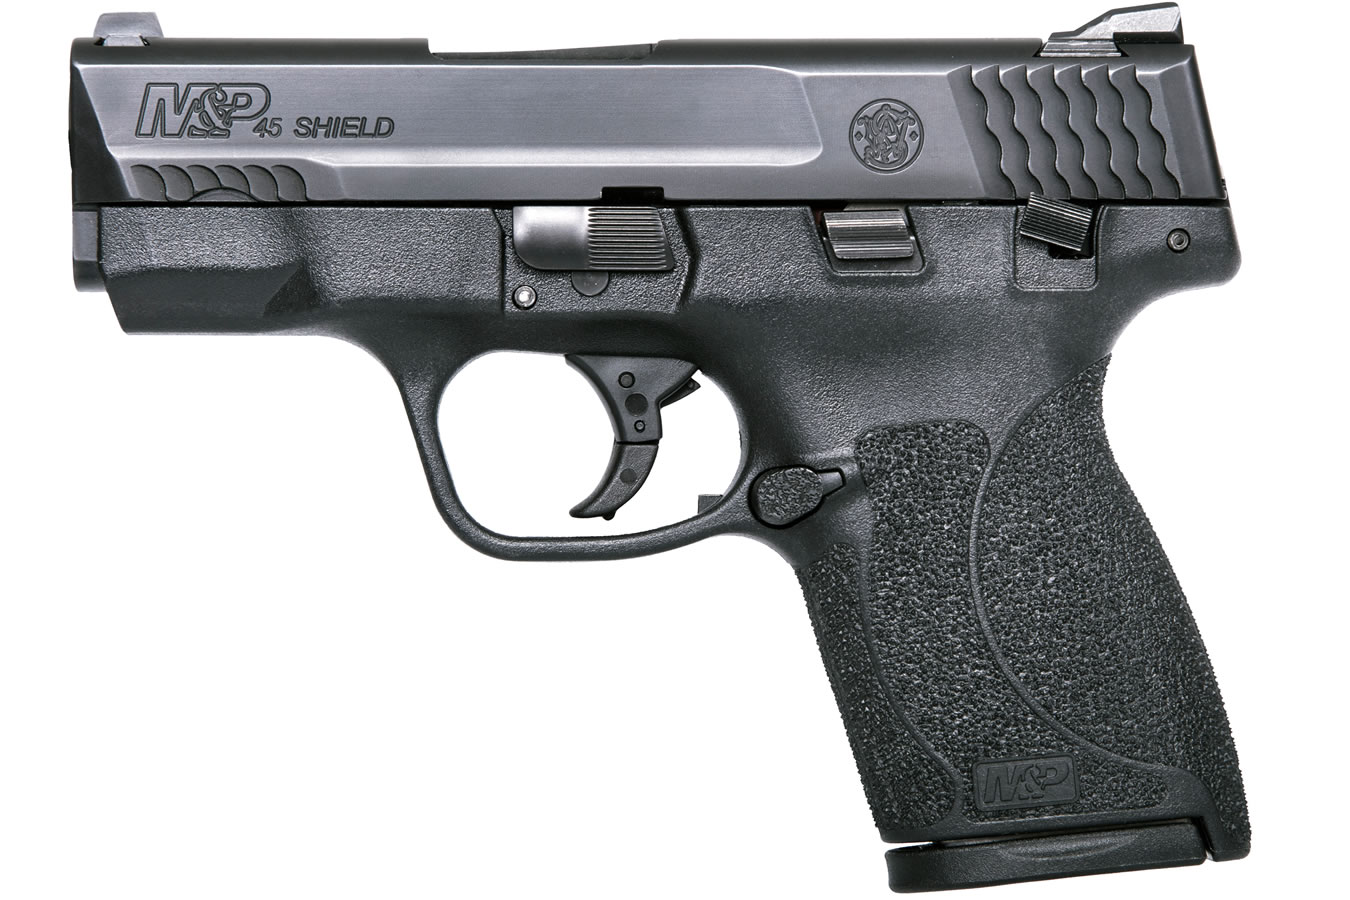 MP45 SHIELD 45 ACP WITH THUMB SAFETY